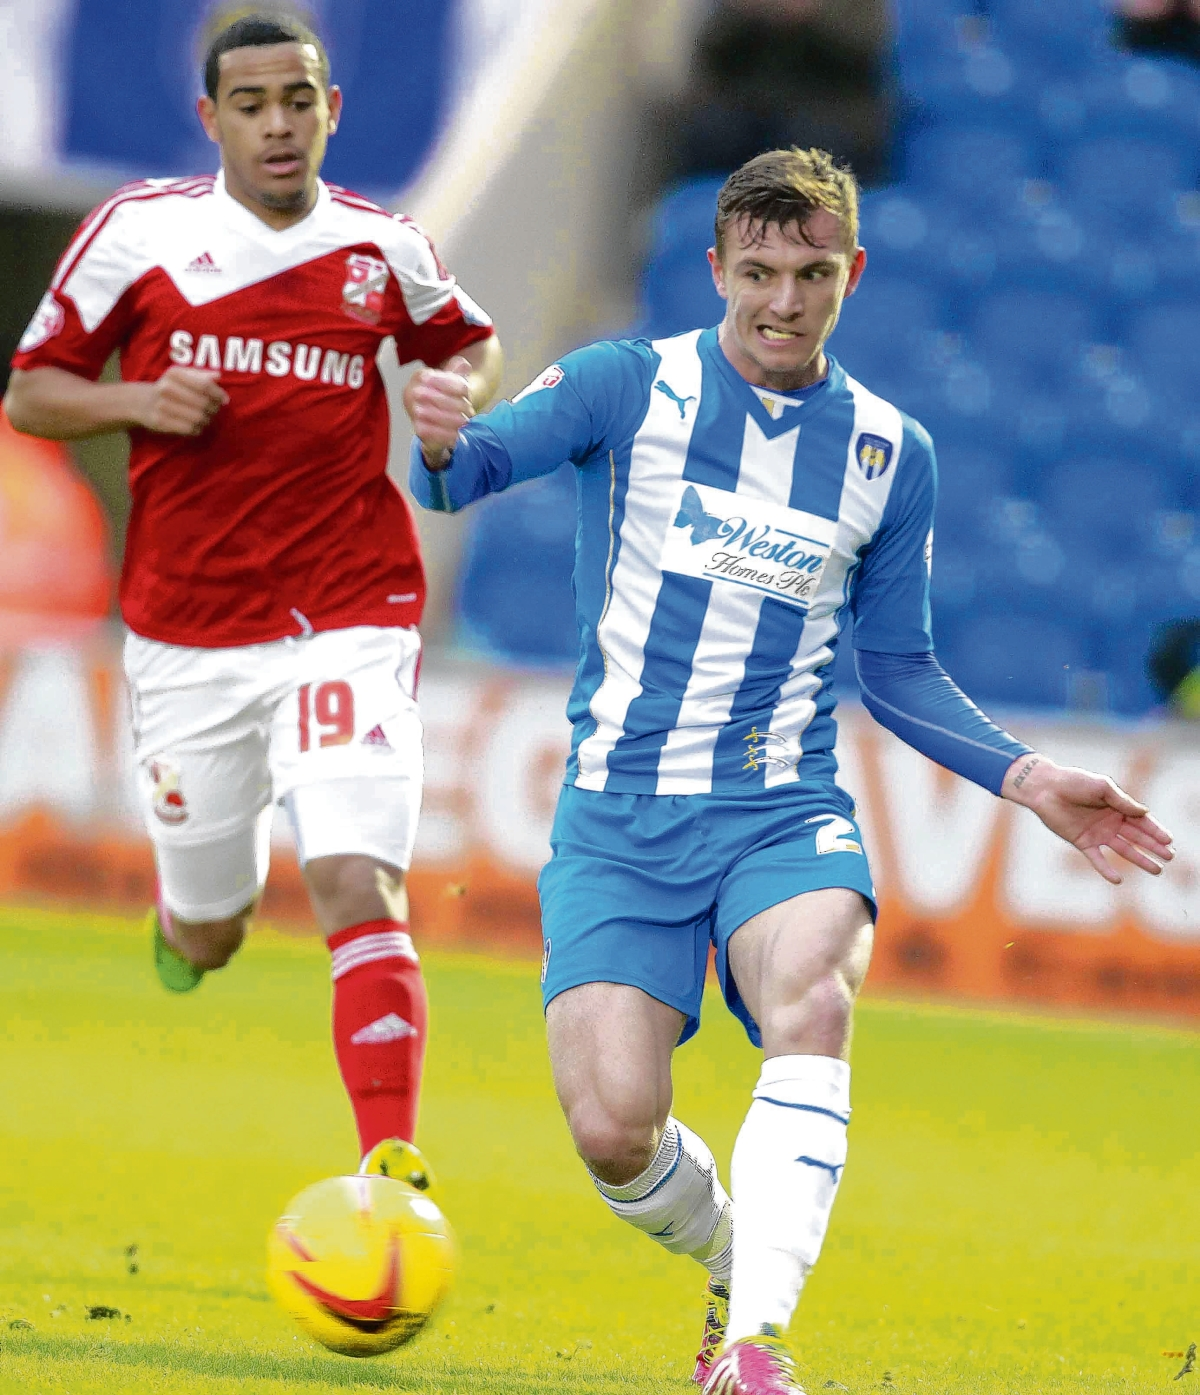 Staying put - Alex Gilbey has signed a new contract with Colchester United until the summer of 2016.